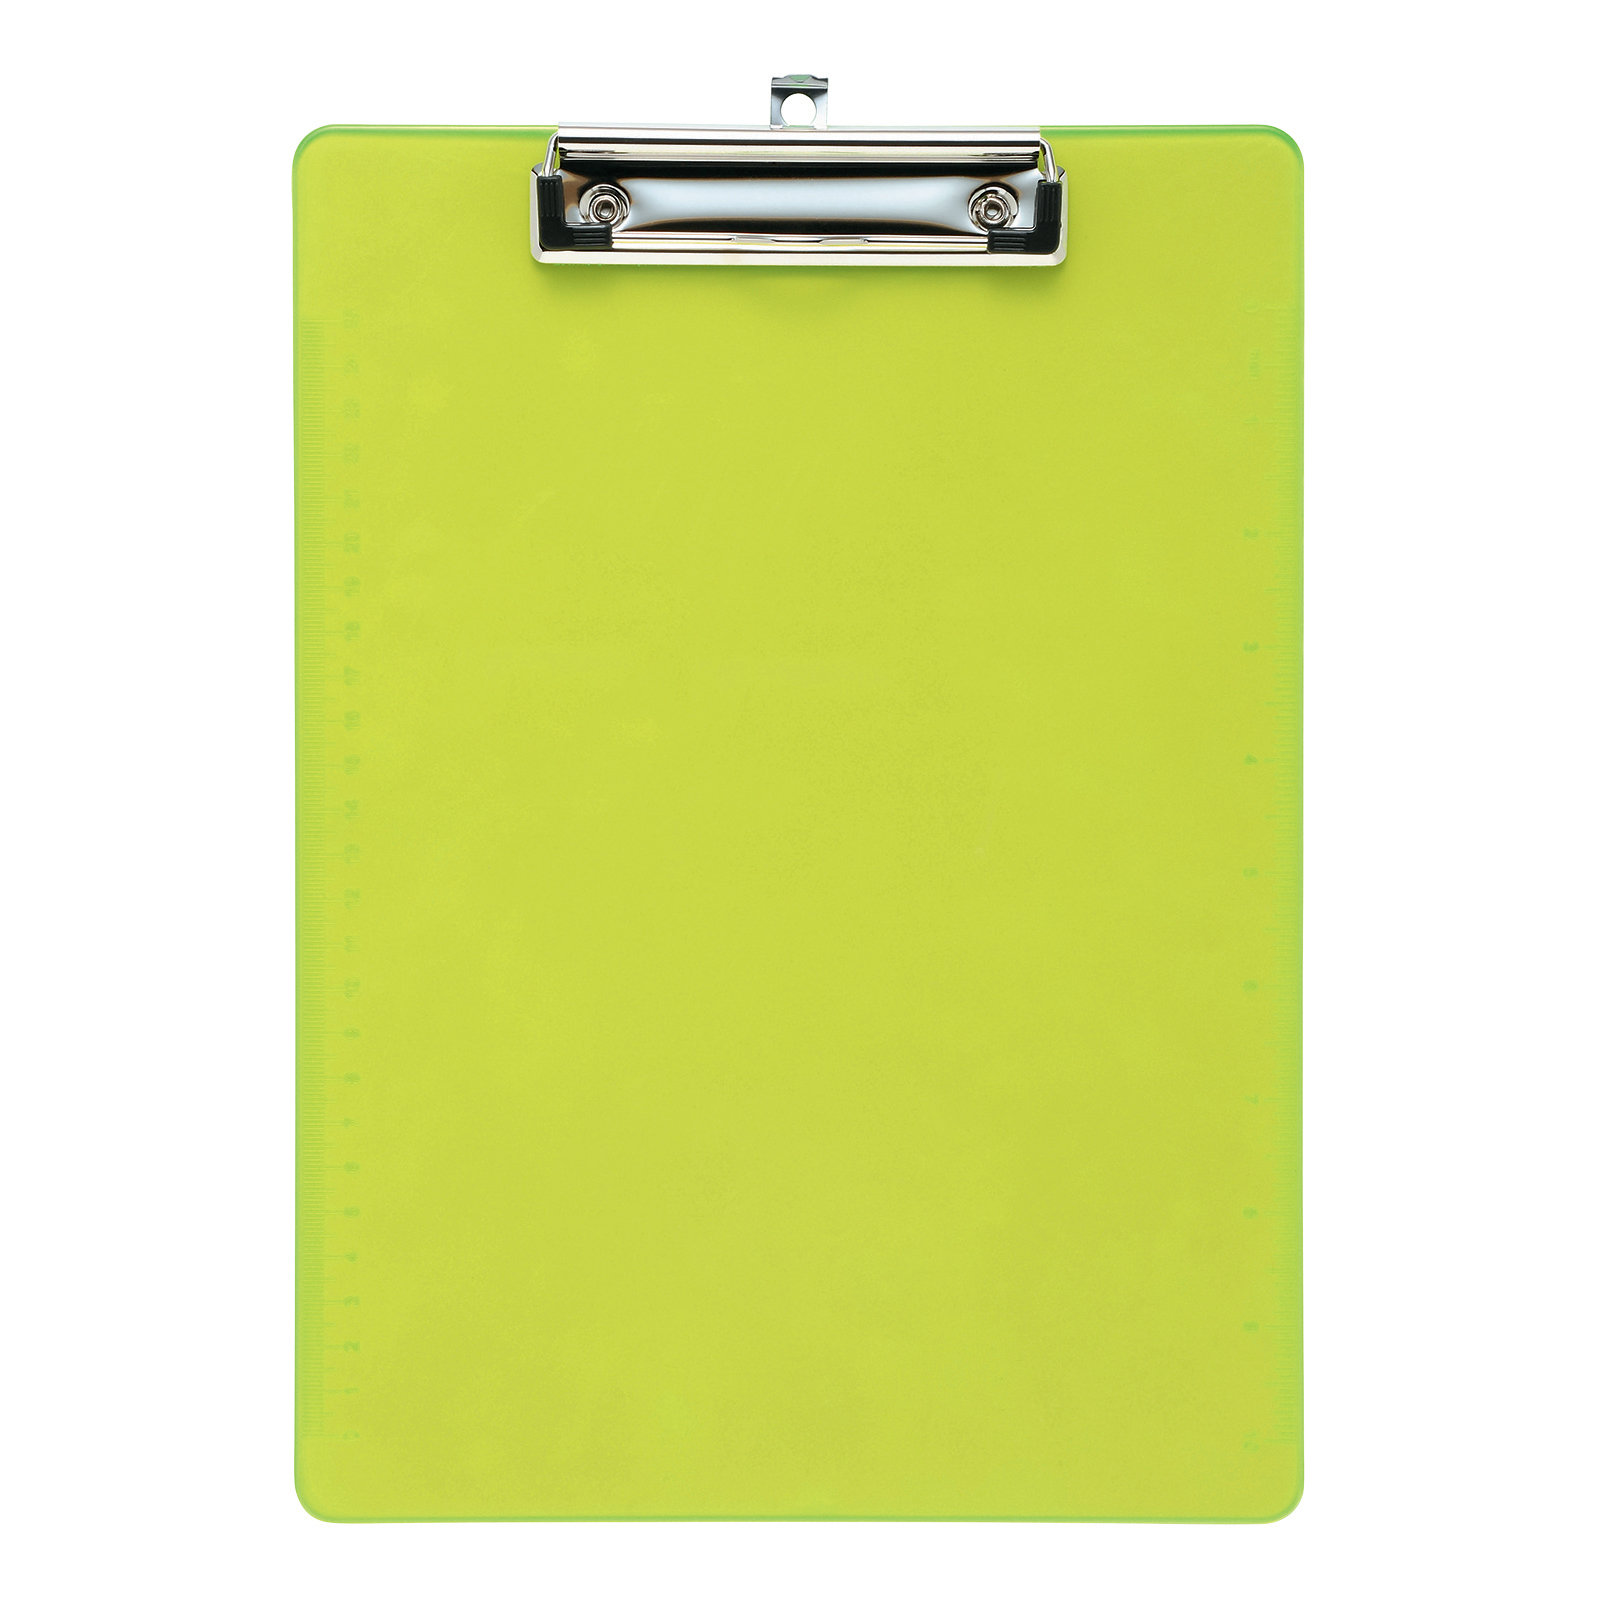 5 Star Office Clipboard Solid Plastic Durable with Rounded Corners A4 Lime Green